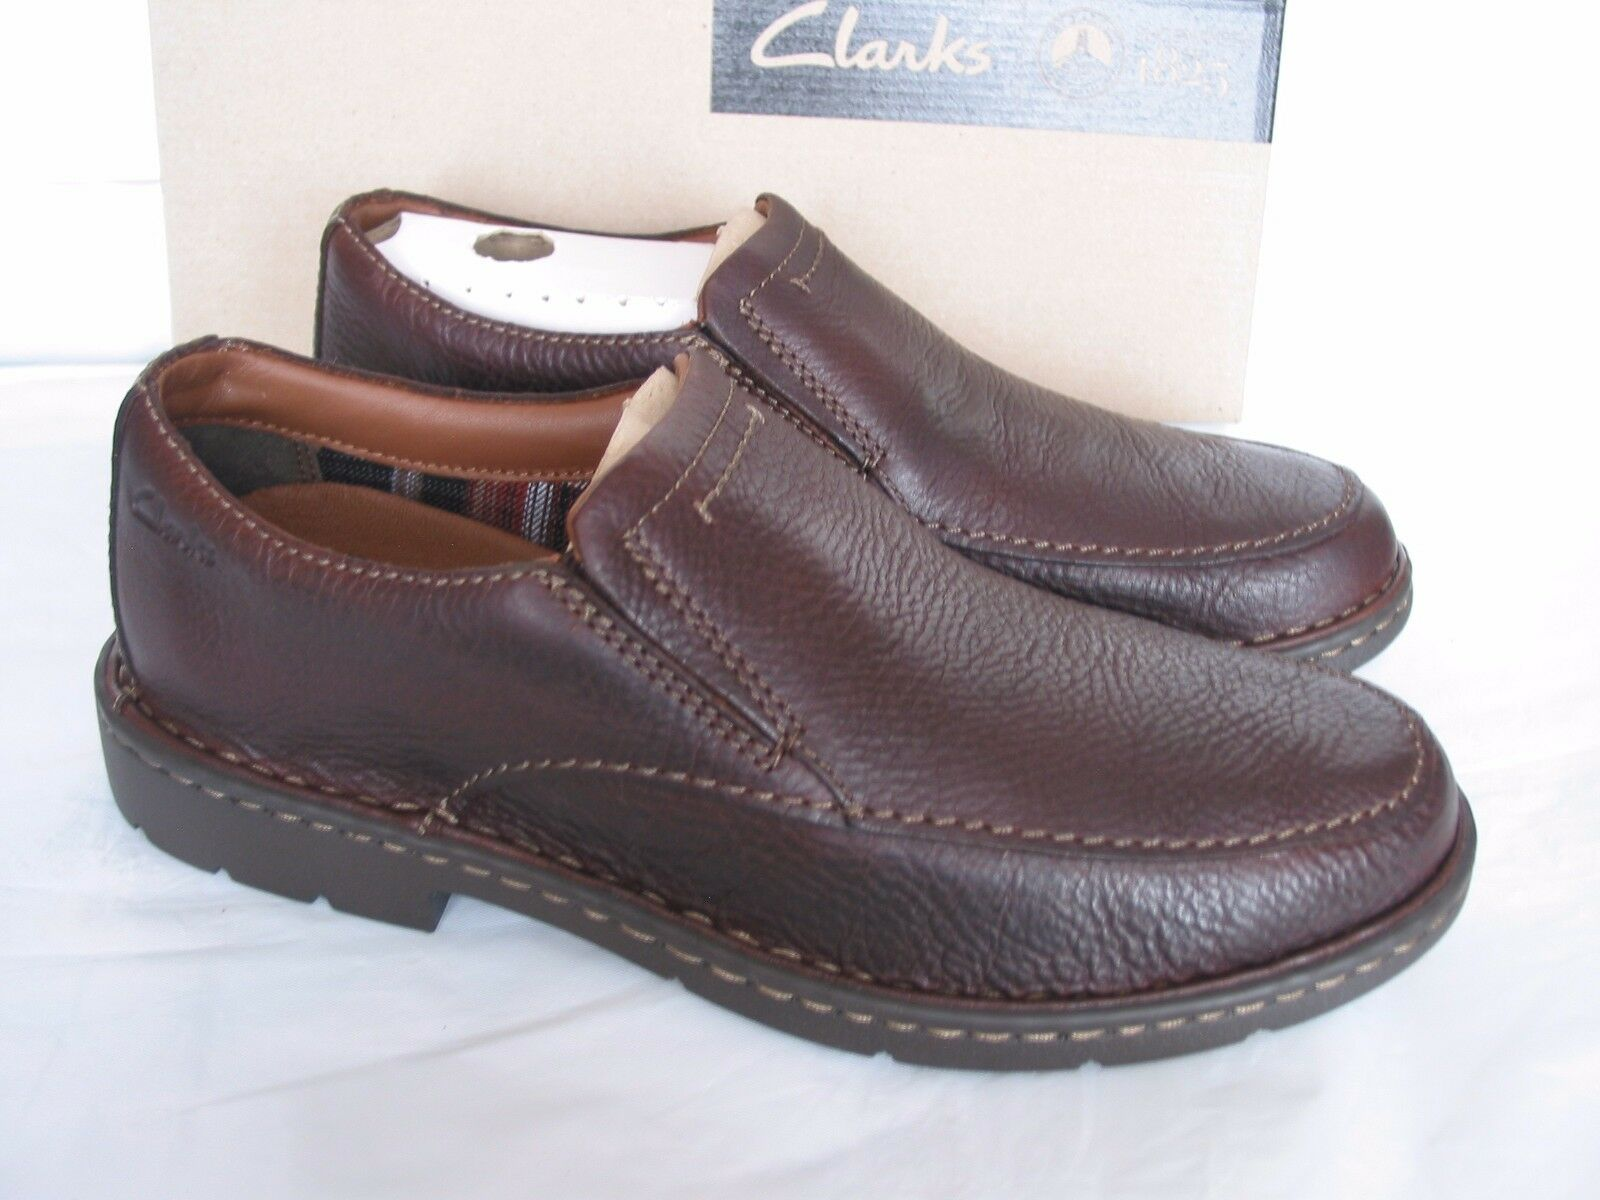 NEW CLARKS STRATTON EASY BROWN LEATHER SHOES SIZE 7 G FIT